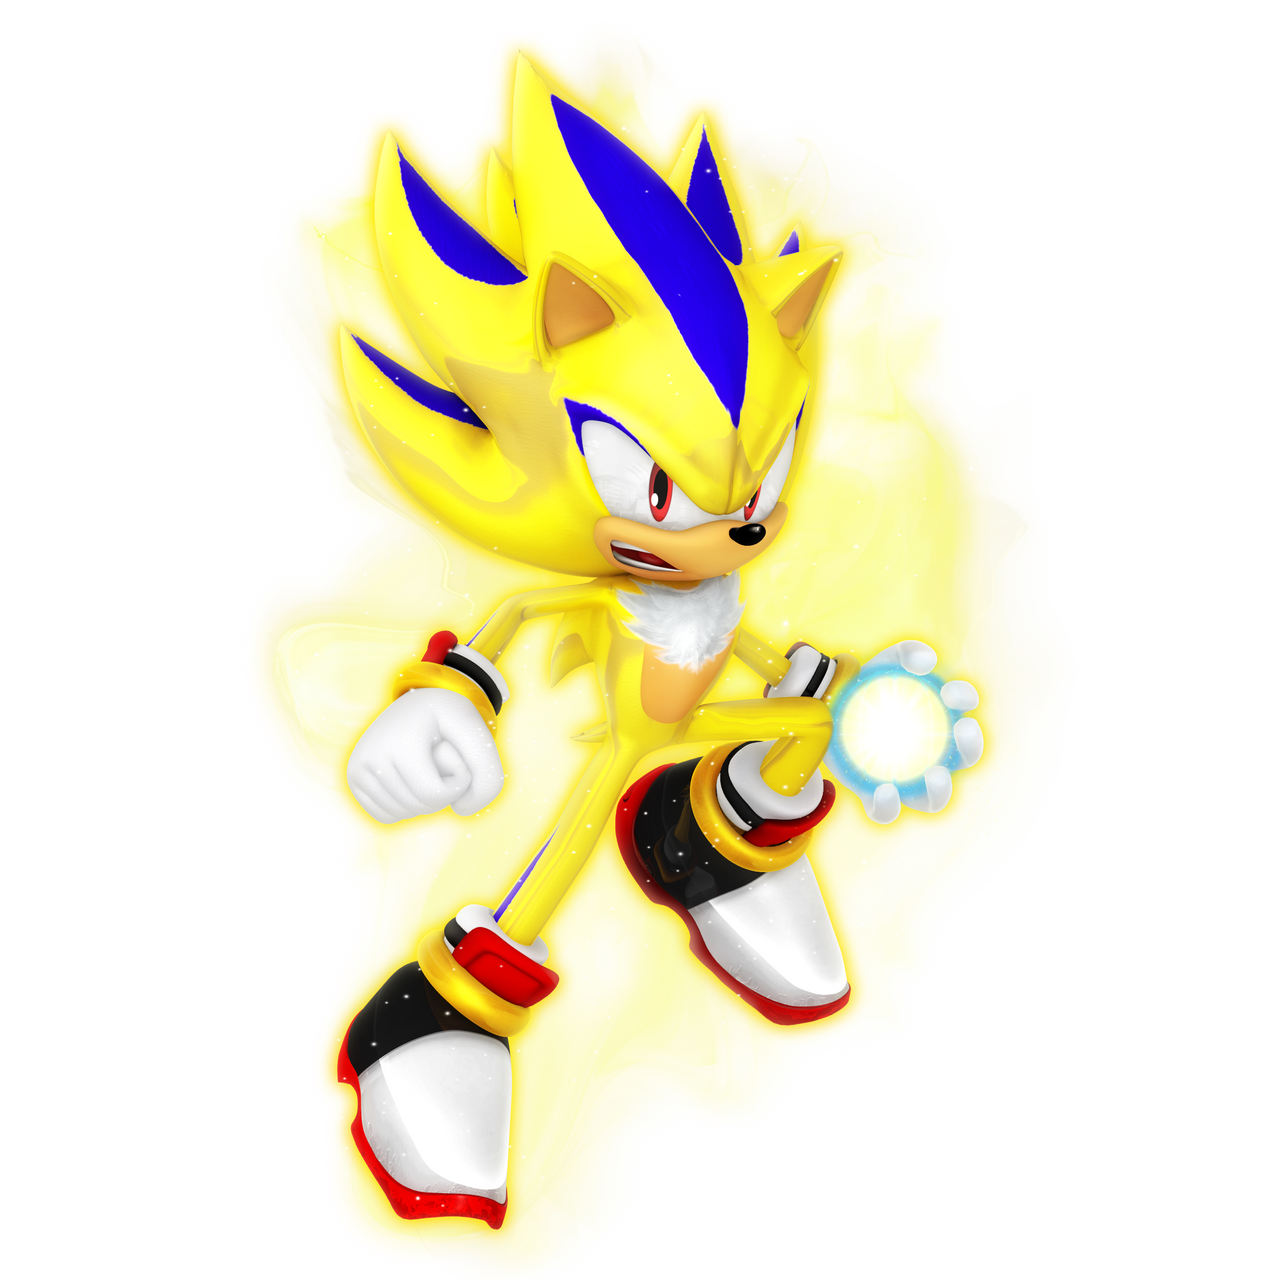 What If Sonic And Shadow Fused Super Sonow By Nibroc Rock On Deviantart Sonic And Shadow Sonic Super Shadow